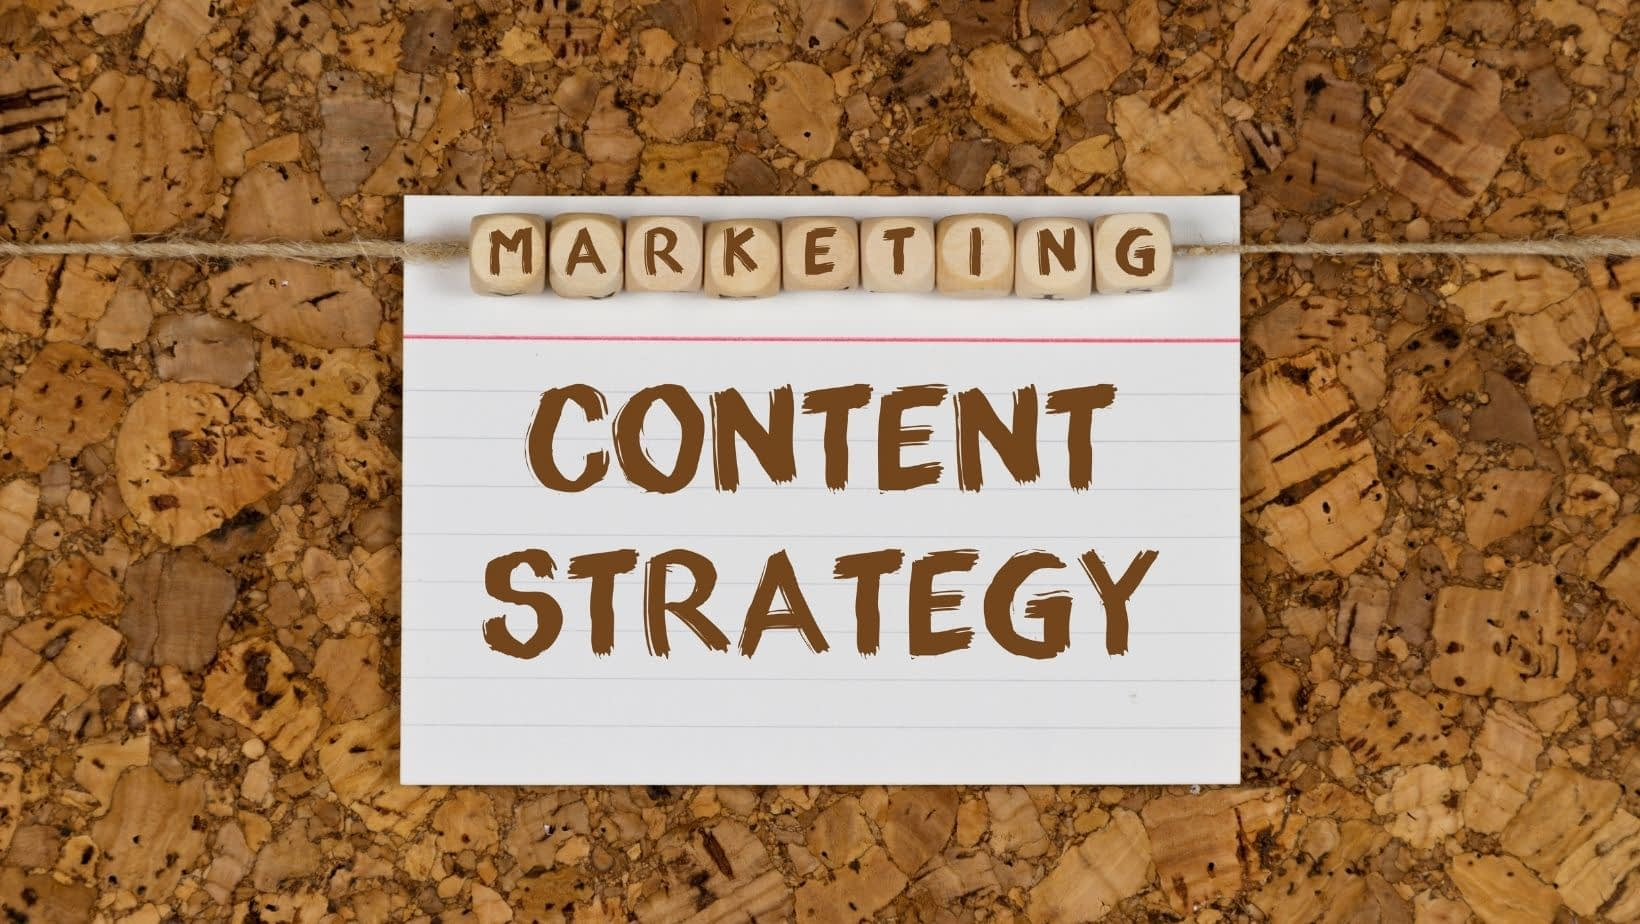 In this blog post, we will discuss how content buckets can help you create engaging, quality content in less time.